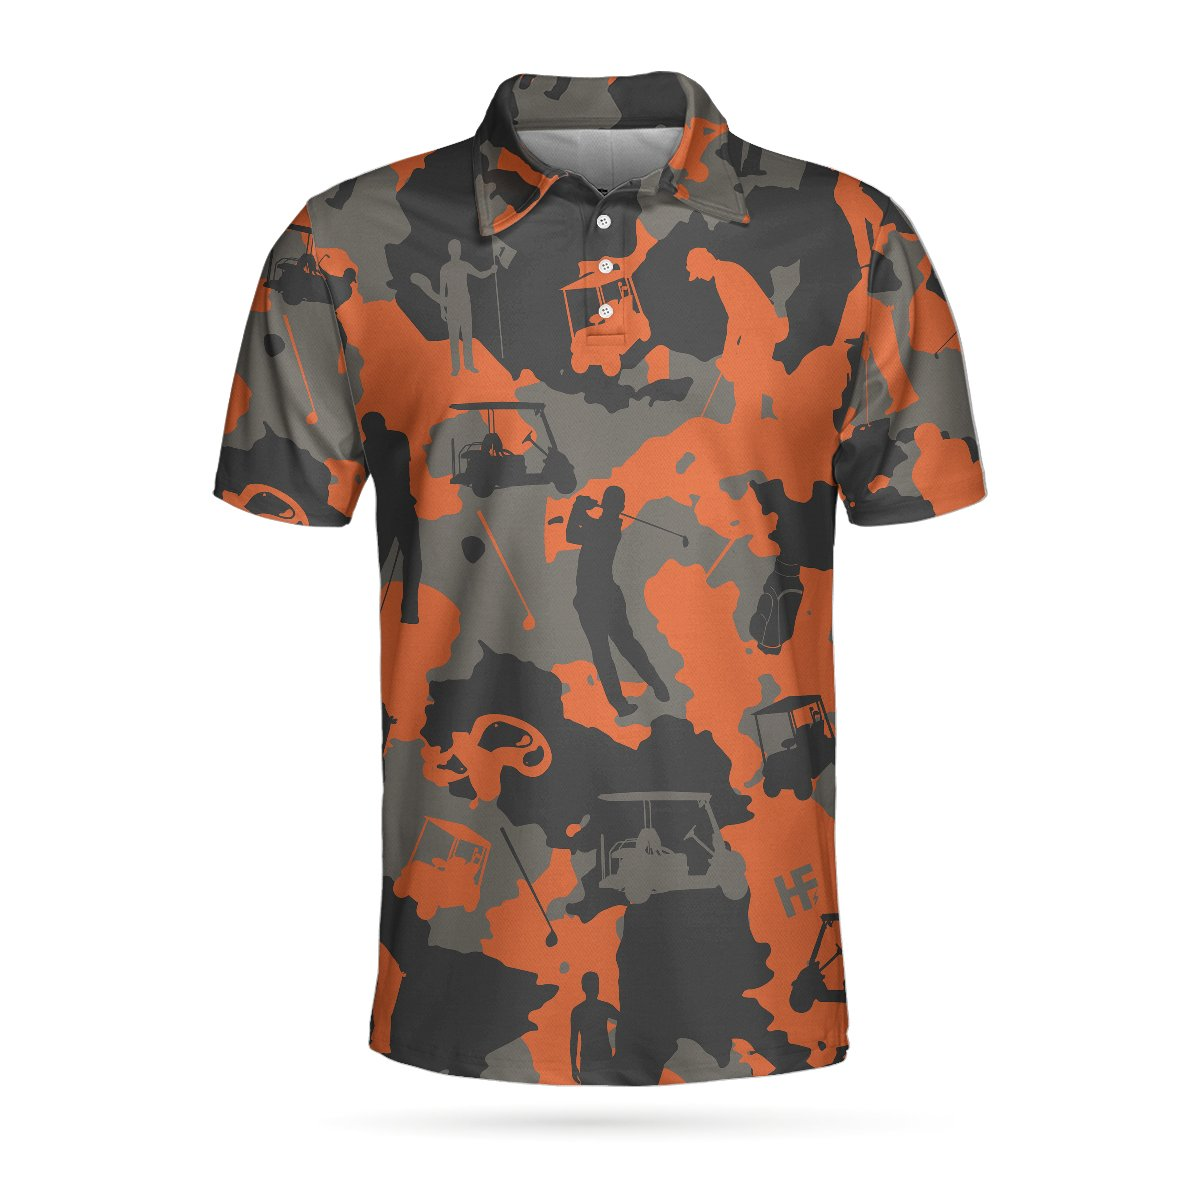 Orange Camouflage Golf EZ20 3103 Polo Shirt